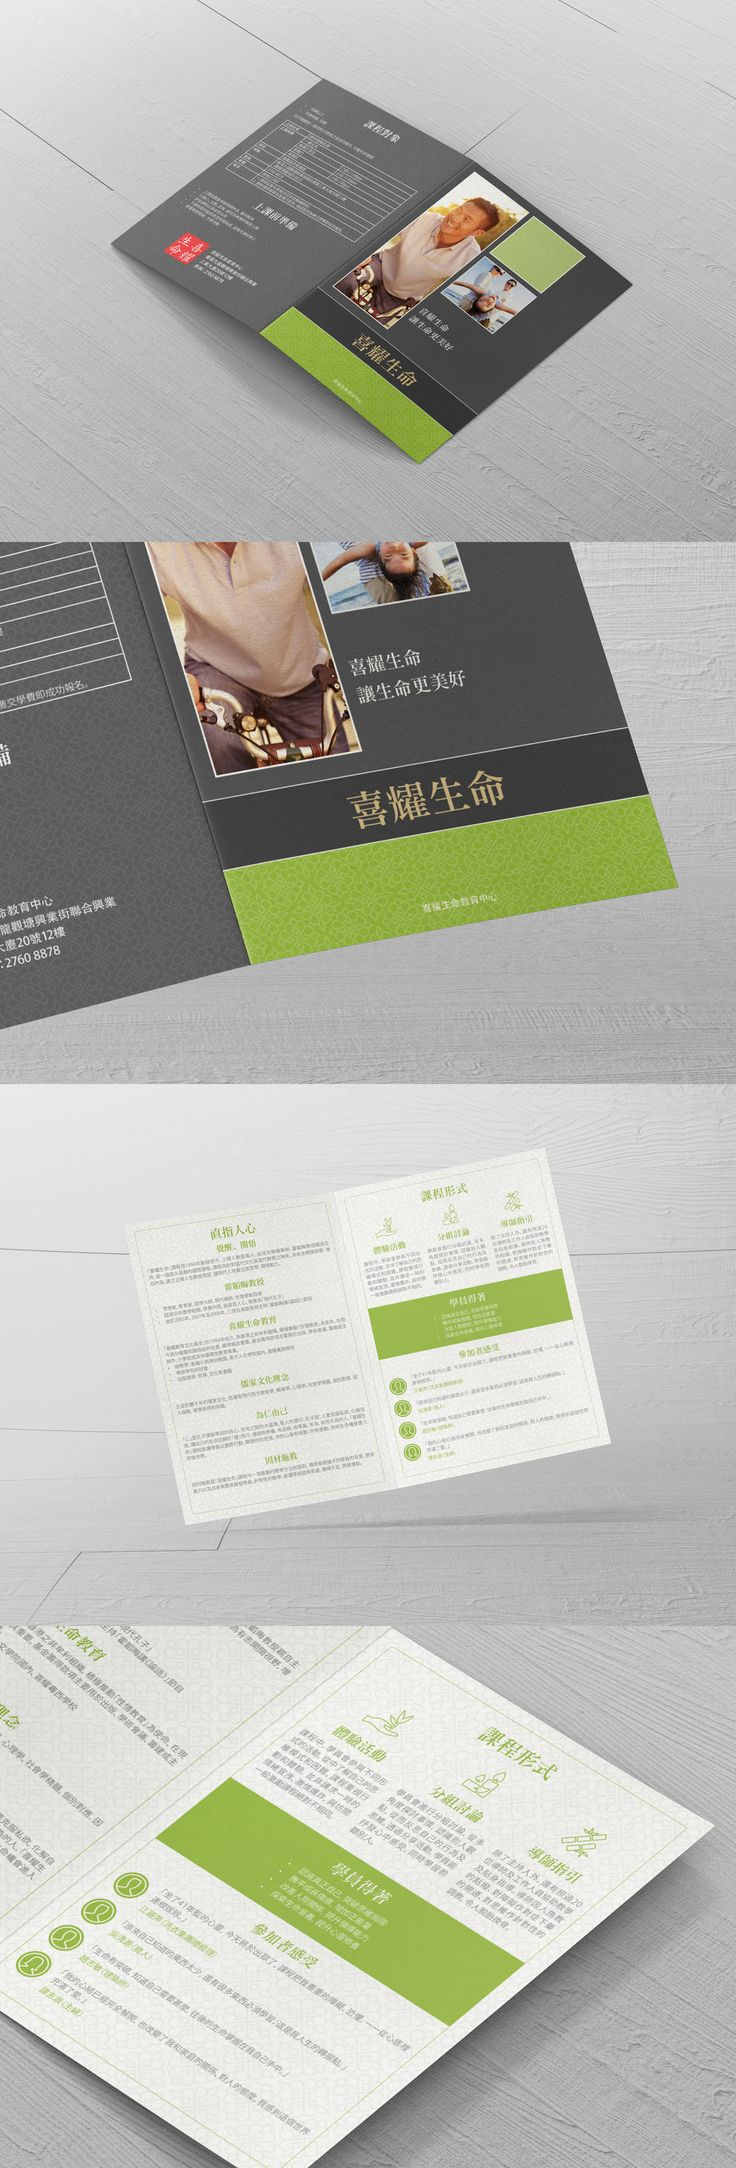 Another cool thing from our studio. #brochure #education #modern #print #branding #brochure #traditional #layout #printdesign #hongkong #indesign #bifold #illustrator #photoshop